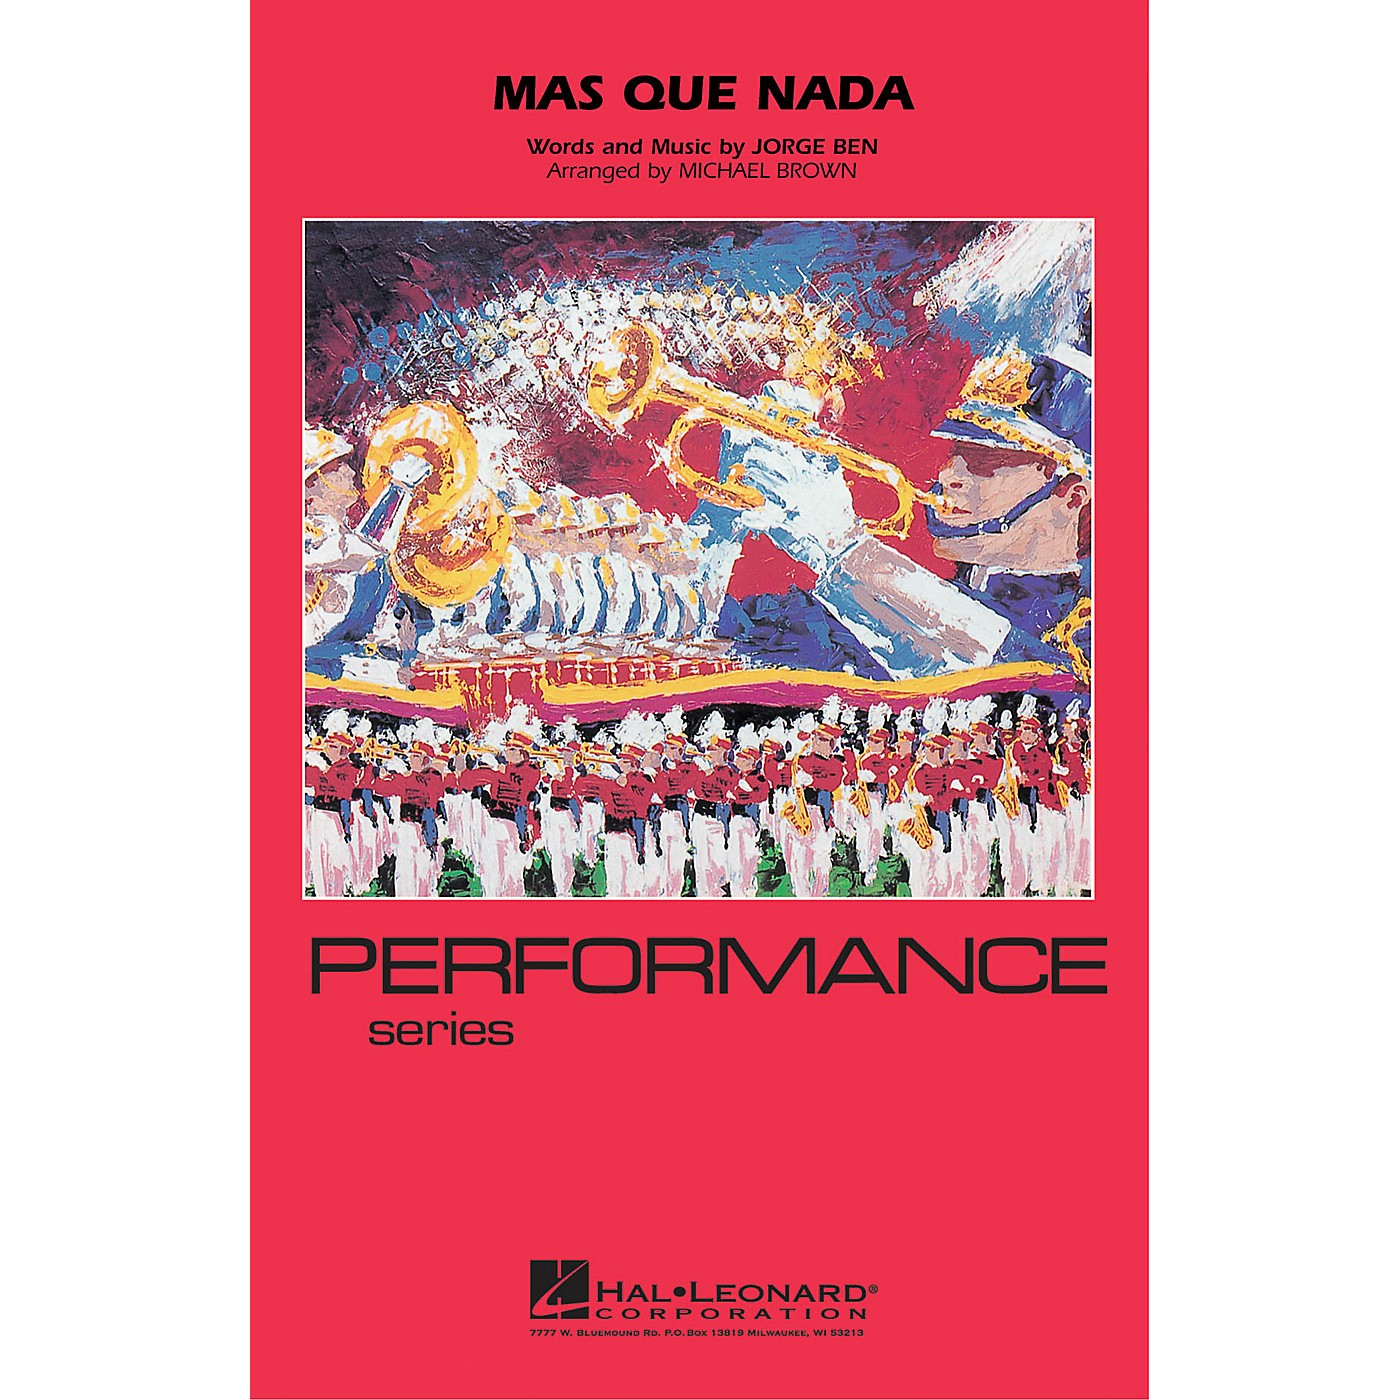 Hal Leonard Mas Que Nada Marching Band Level 3-4 Arranged by Michael Brown thumbnail